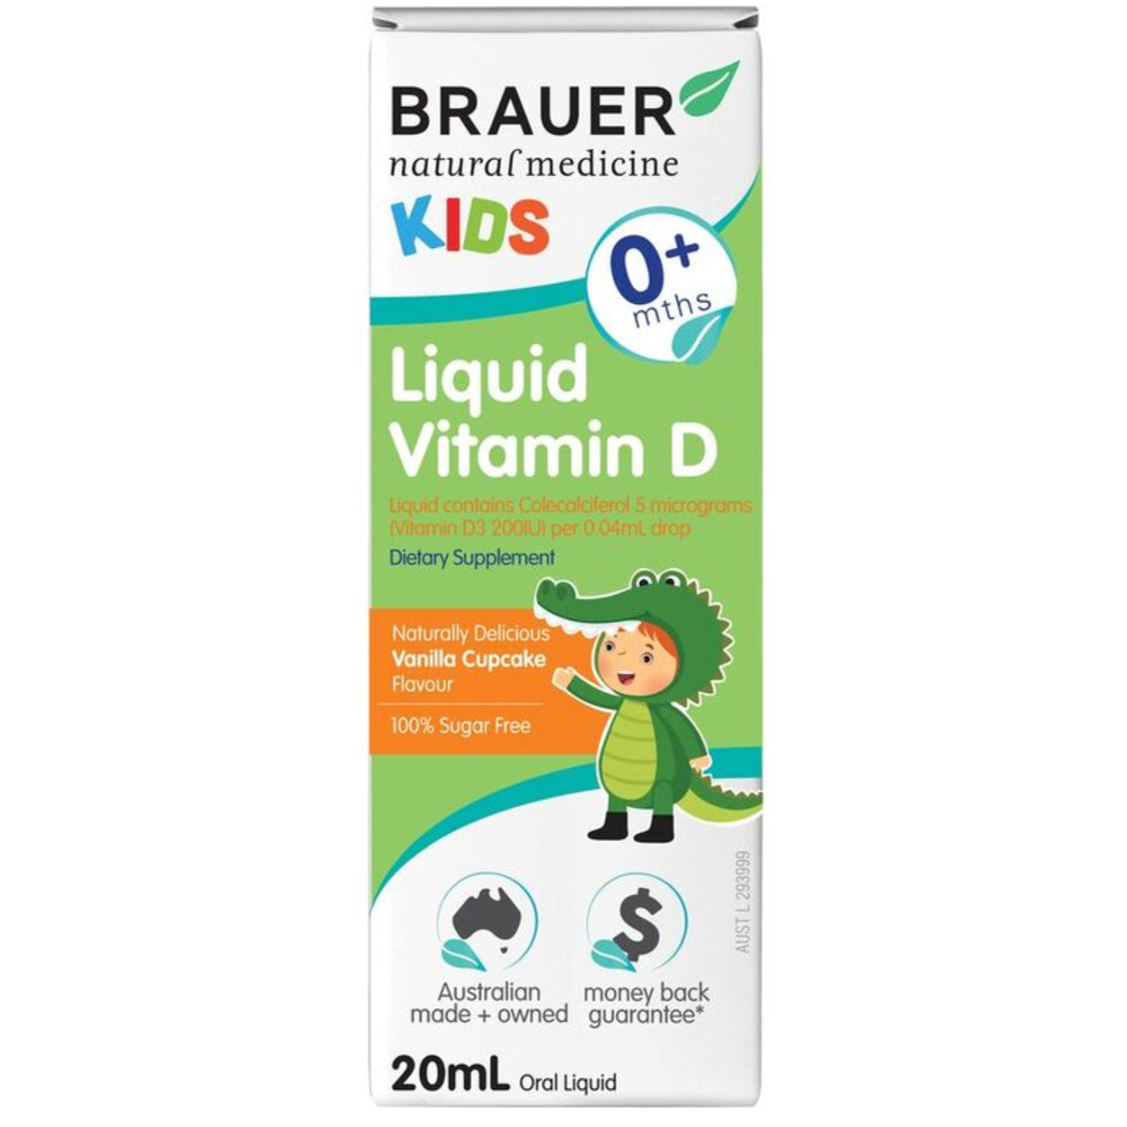 Brauer Kids Liquid Vitamin D, 20ml.-NaturesWisdom